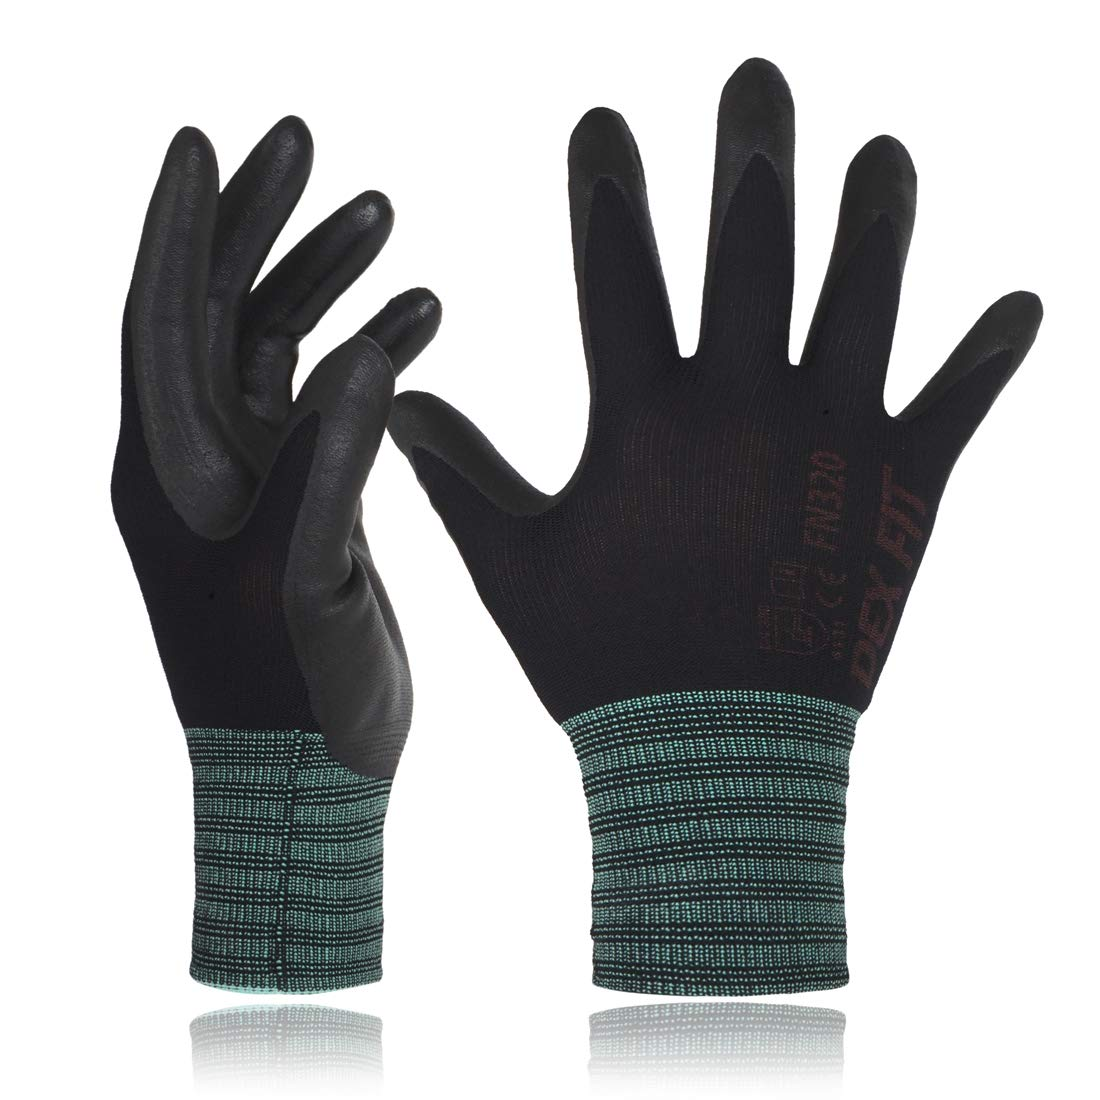 DEX FIT Black Nylon Work Gloves FN320, 3D Comfort Stretch Fit, Power Grip, Thin Lightweight, Durable Foam Nitrile Coating, Machine Washable, Large 3 Pairs Pack